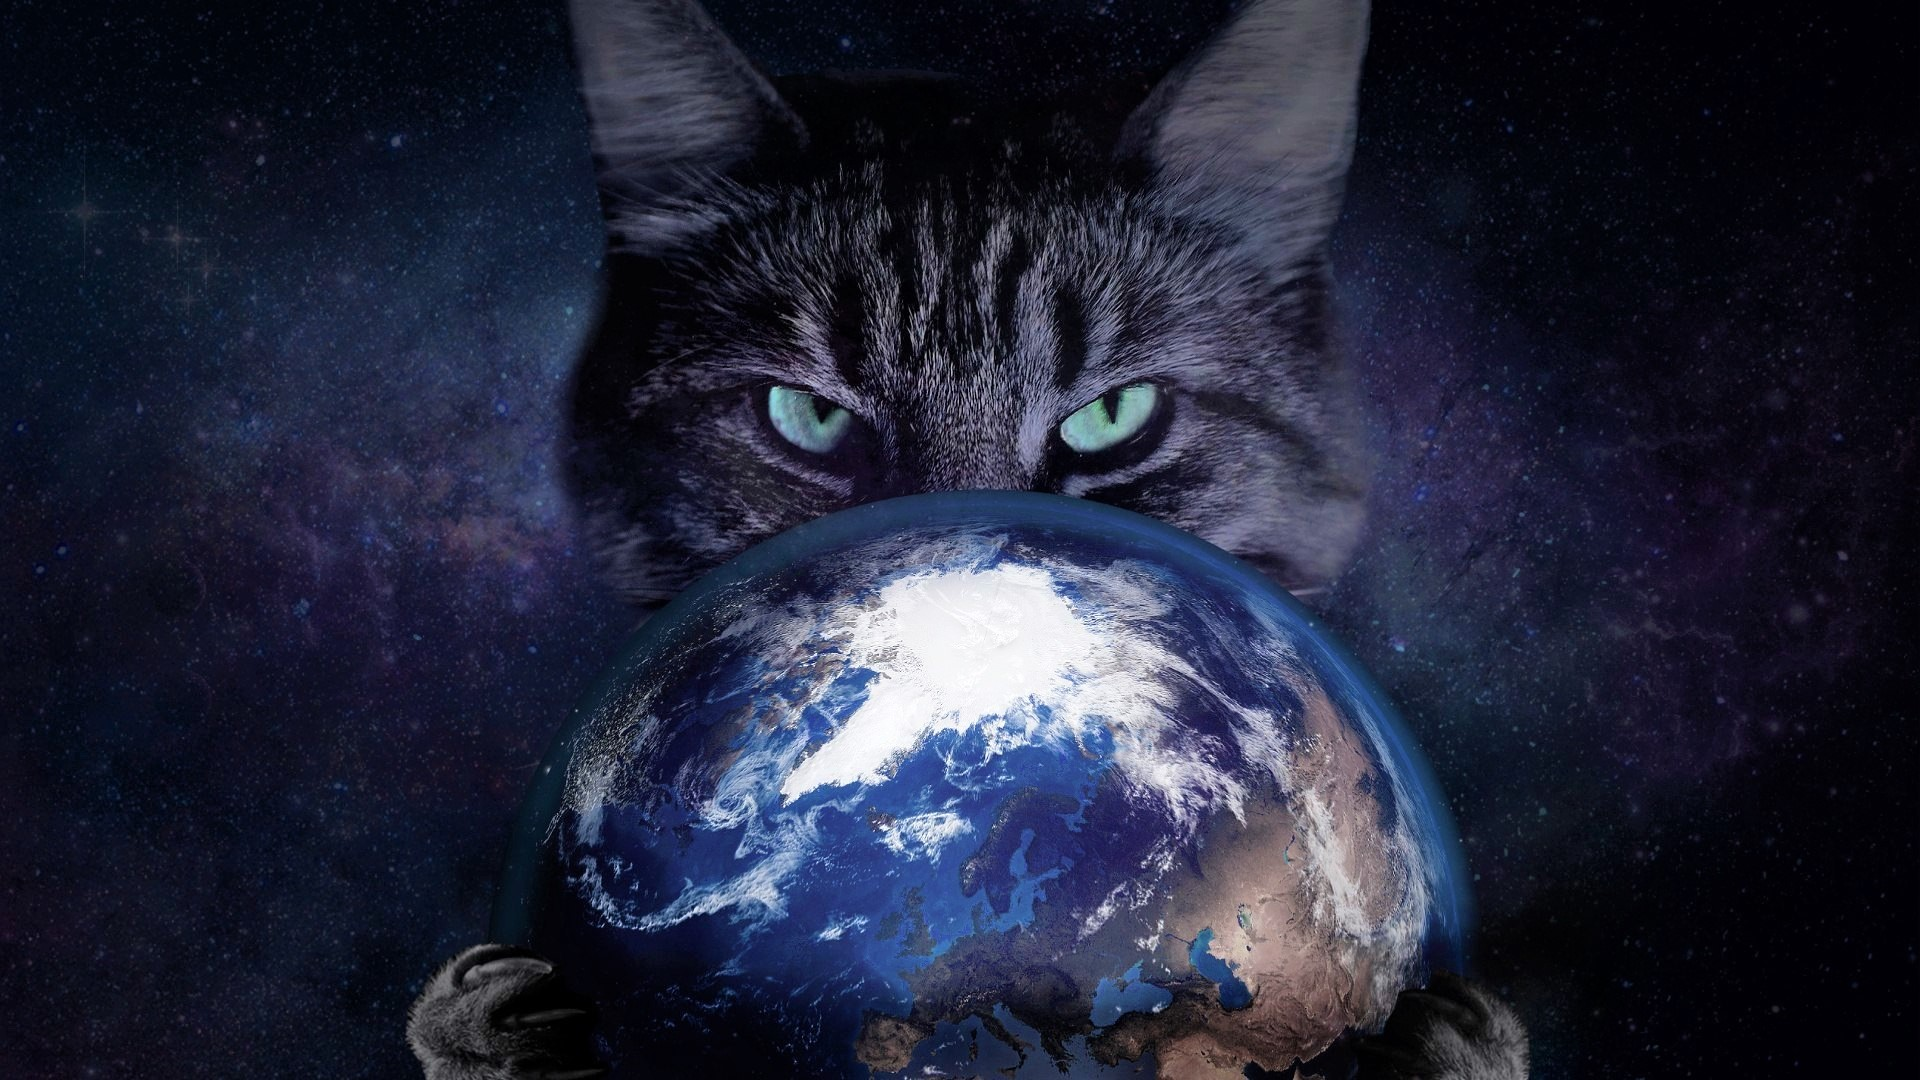 Cat Holding Planet Earth Full HD Wallpaper And Background Image